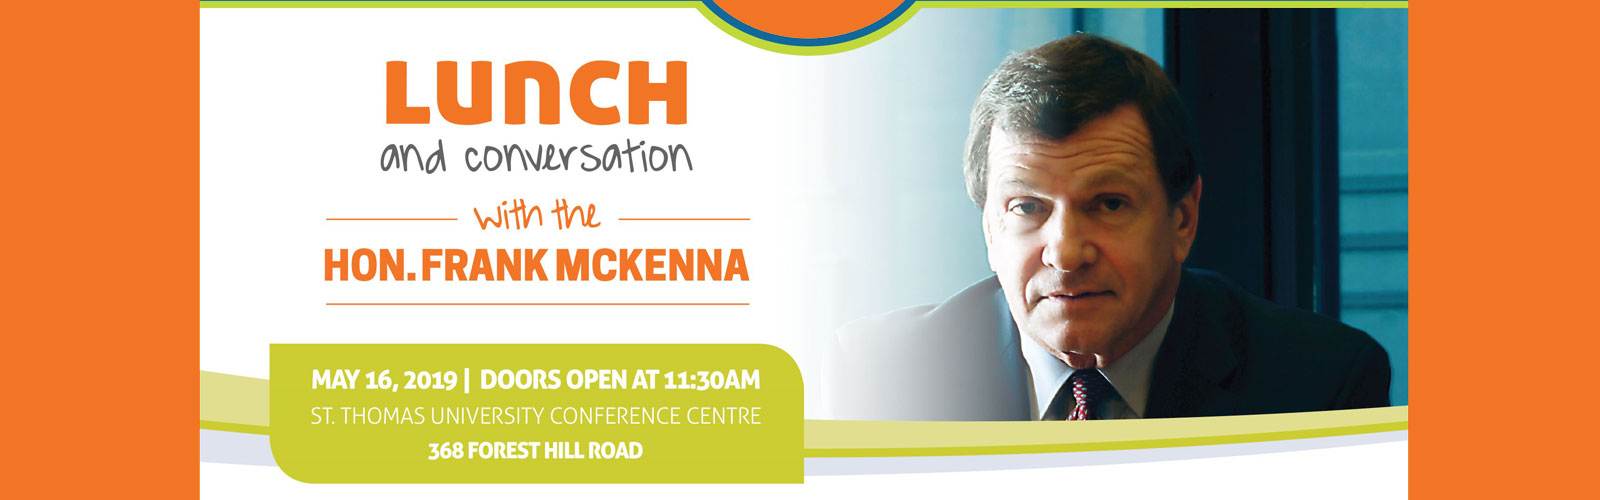 Lunch with the Hon. Frank McKenna